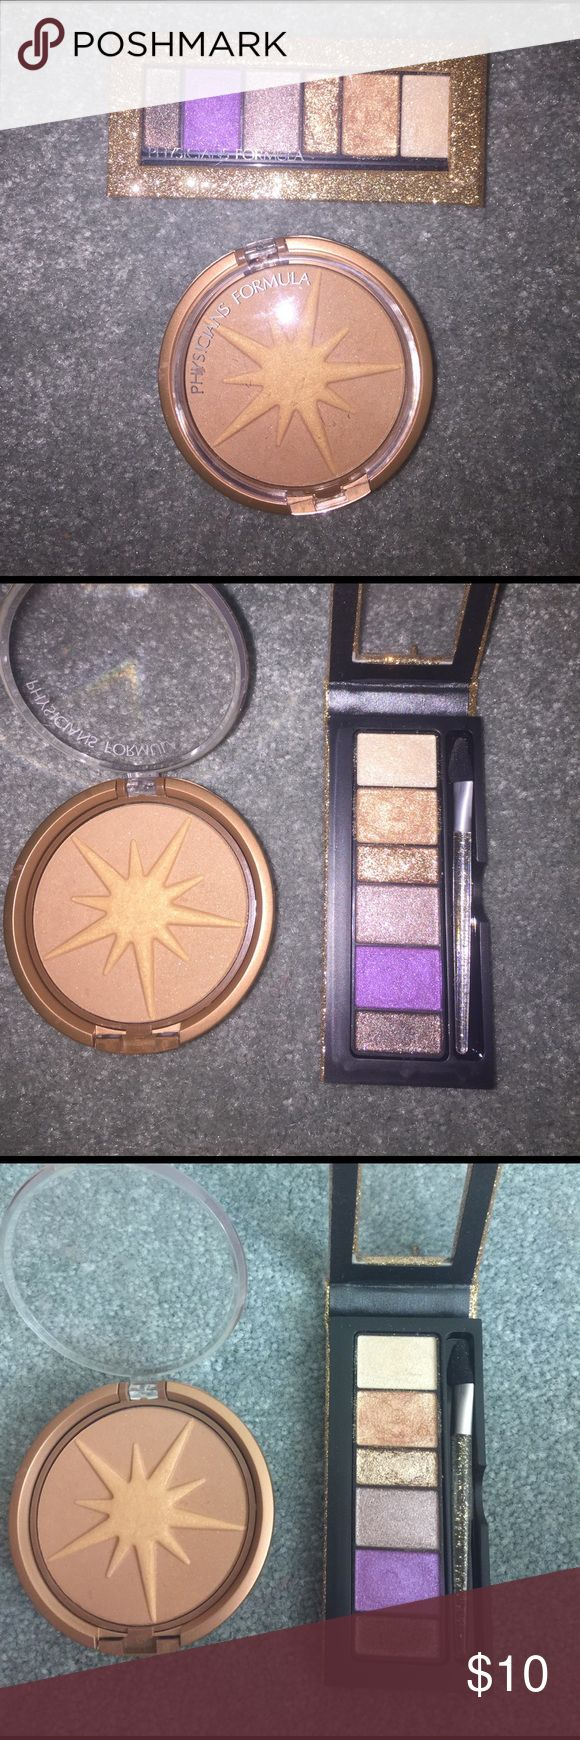 Physician's Formula eyeshadow palette and bronzer Eyeshadow palette and bronzer combo. Bronzer used a few times, one eyeshadow shade used once. Great condition! Physicians Formula Makeup Eyeshadow